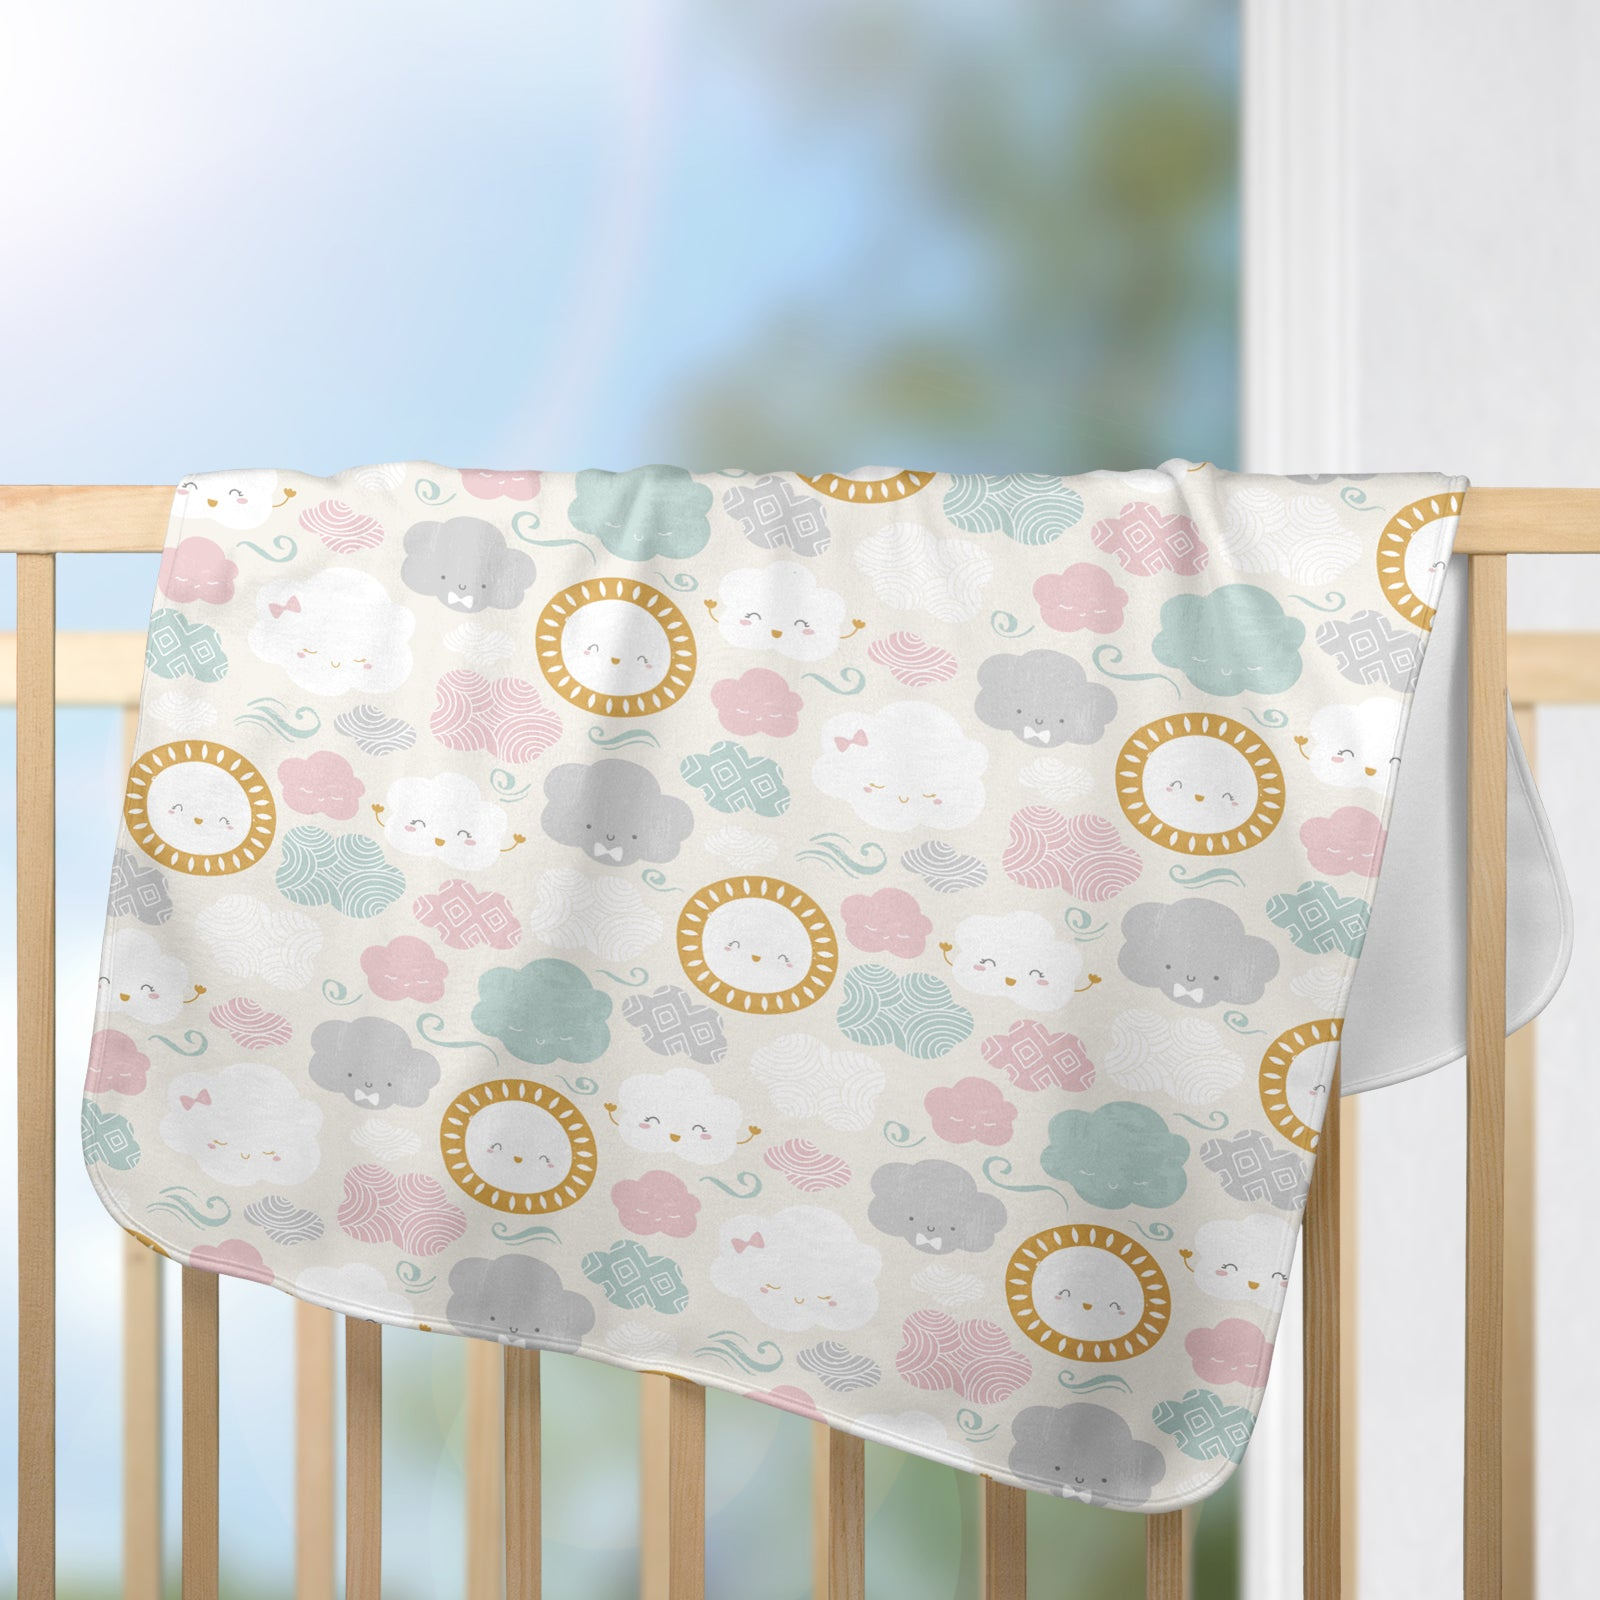 Cute Clouds Theme Baby Blanket Clouds Nursery Blanket Cute Gender Neutral Baby Blanket Scandinavian Style Nursery Baby Girl Blanket Baby Boy Blanket Unisex Blanket Sun and Clouds Blanket